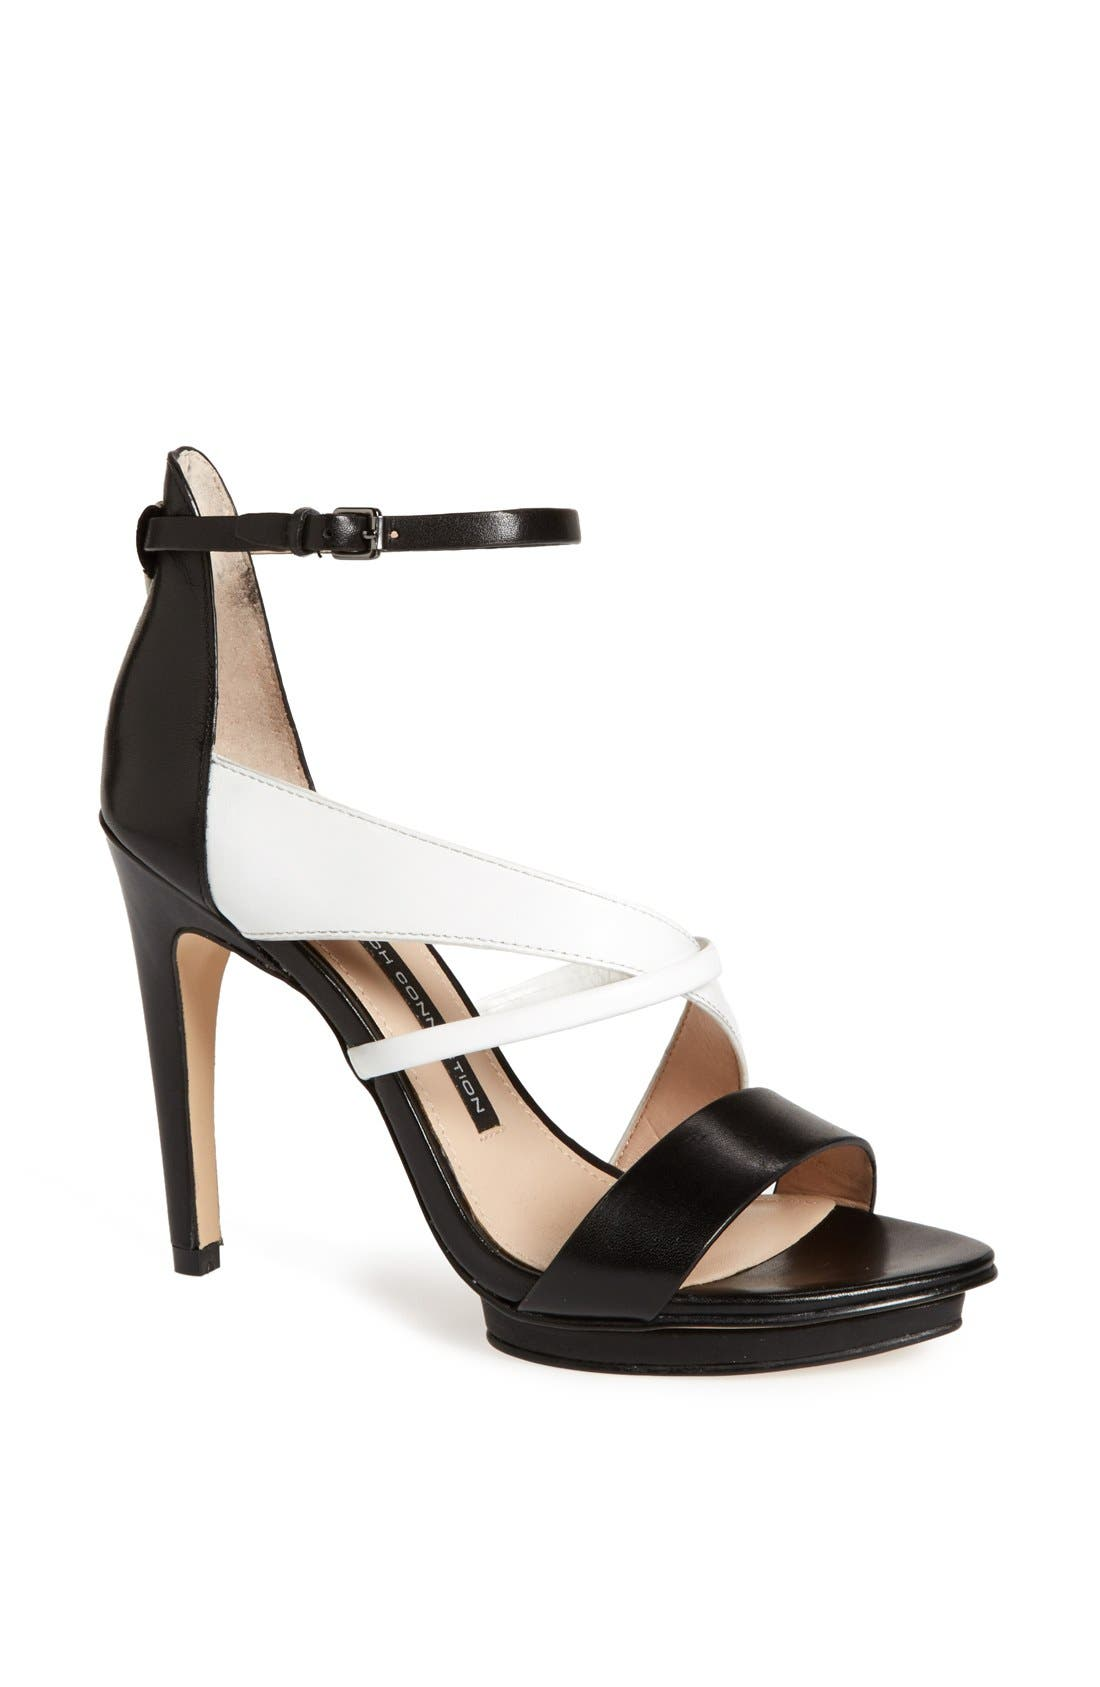 Alternate Image 1 Selected - French Connection 'Wendi' Sandal